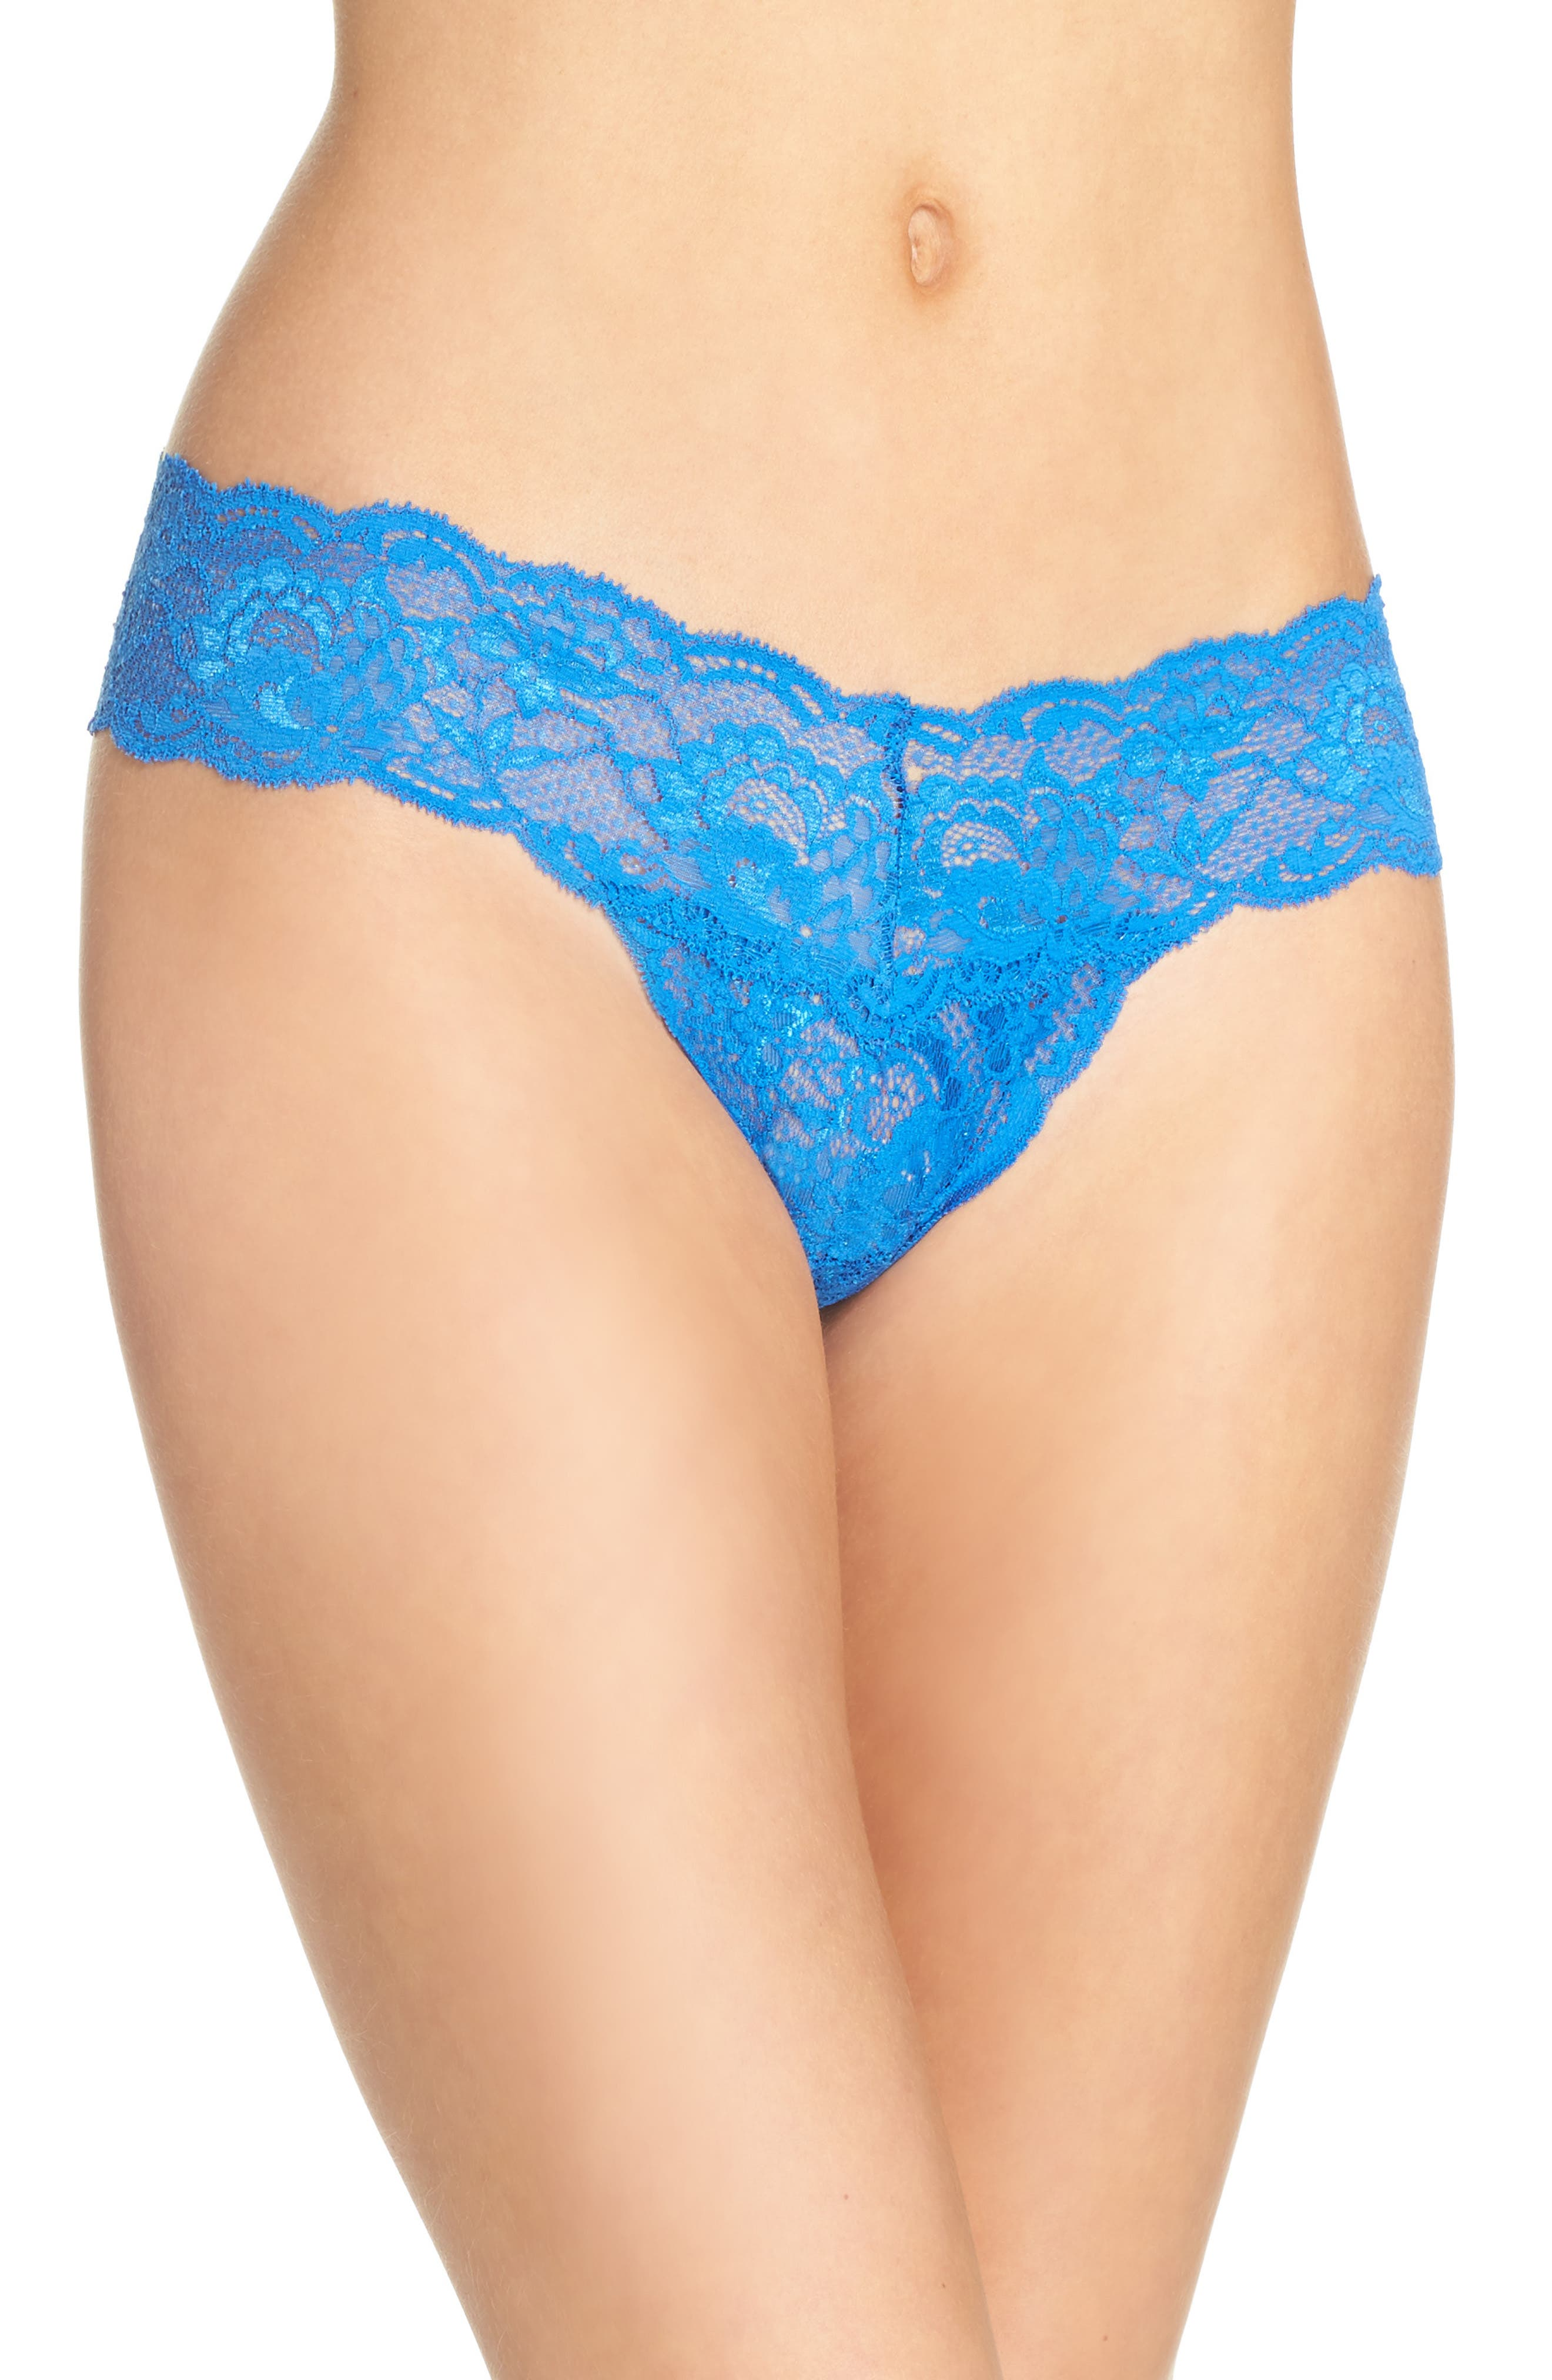 'Never Say Never Cutie' Thong,                             Alternate thumbnail 140, color,